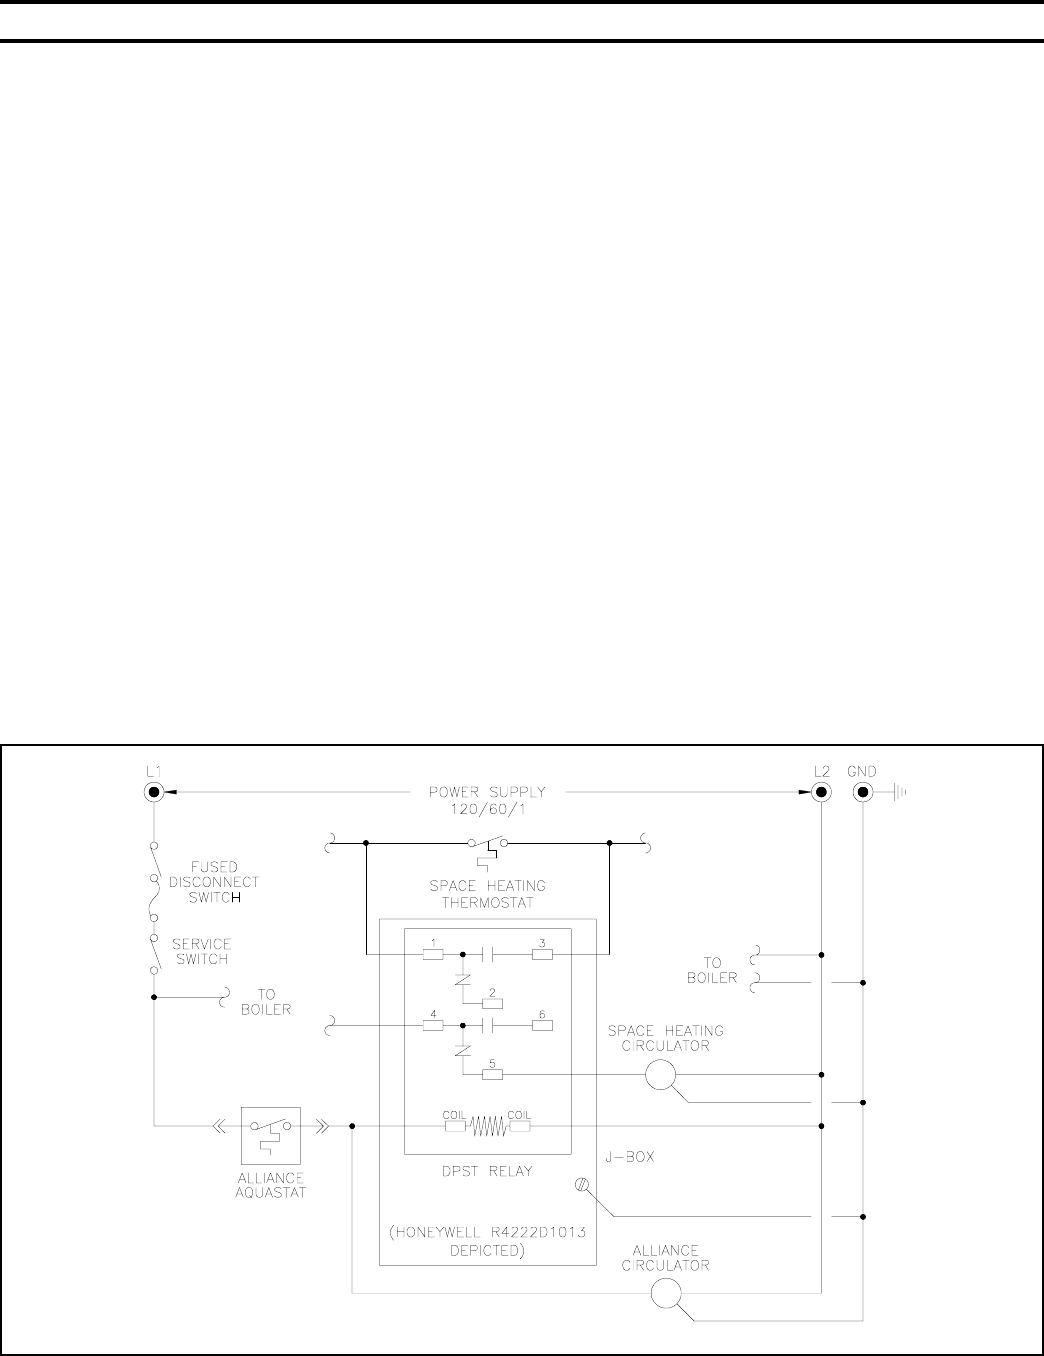 0625ab9c 76f9 46d7 bad2 079564ddd4fe bgf page 15 of burnham water heater 79a user guide manualsonline com Basic Electrical Wiring Diagrams at mifinder.co